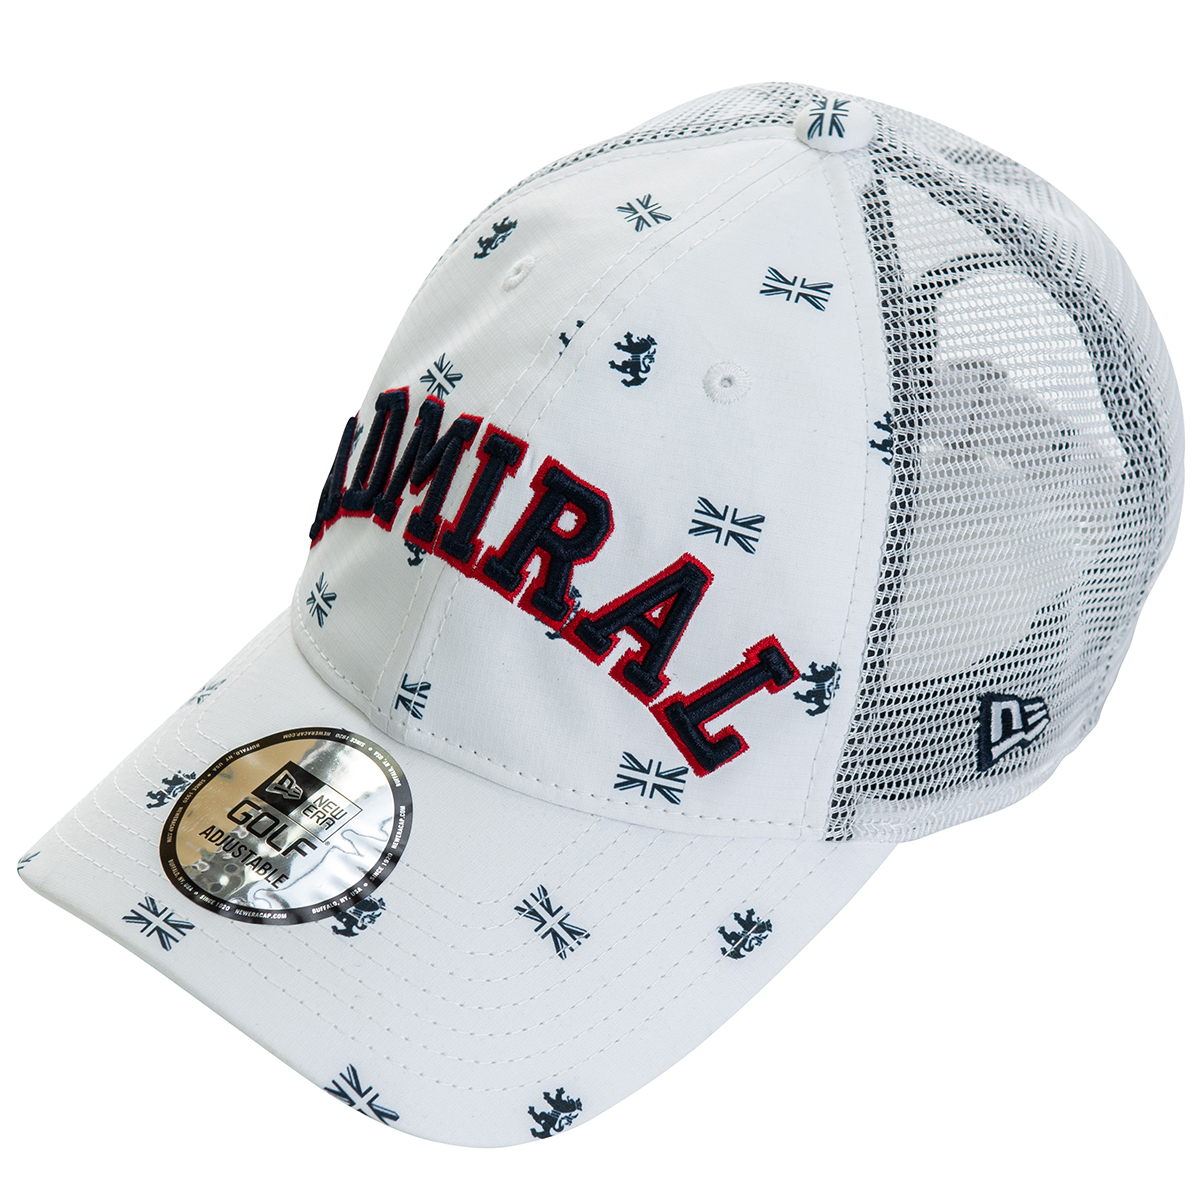 NEWERA×ADMIRAL BELL OASIS キャップ